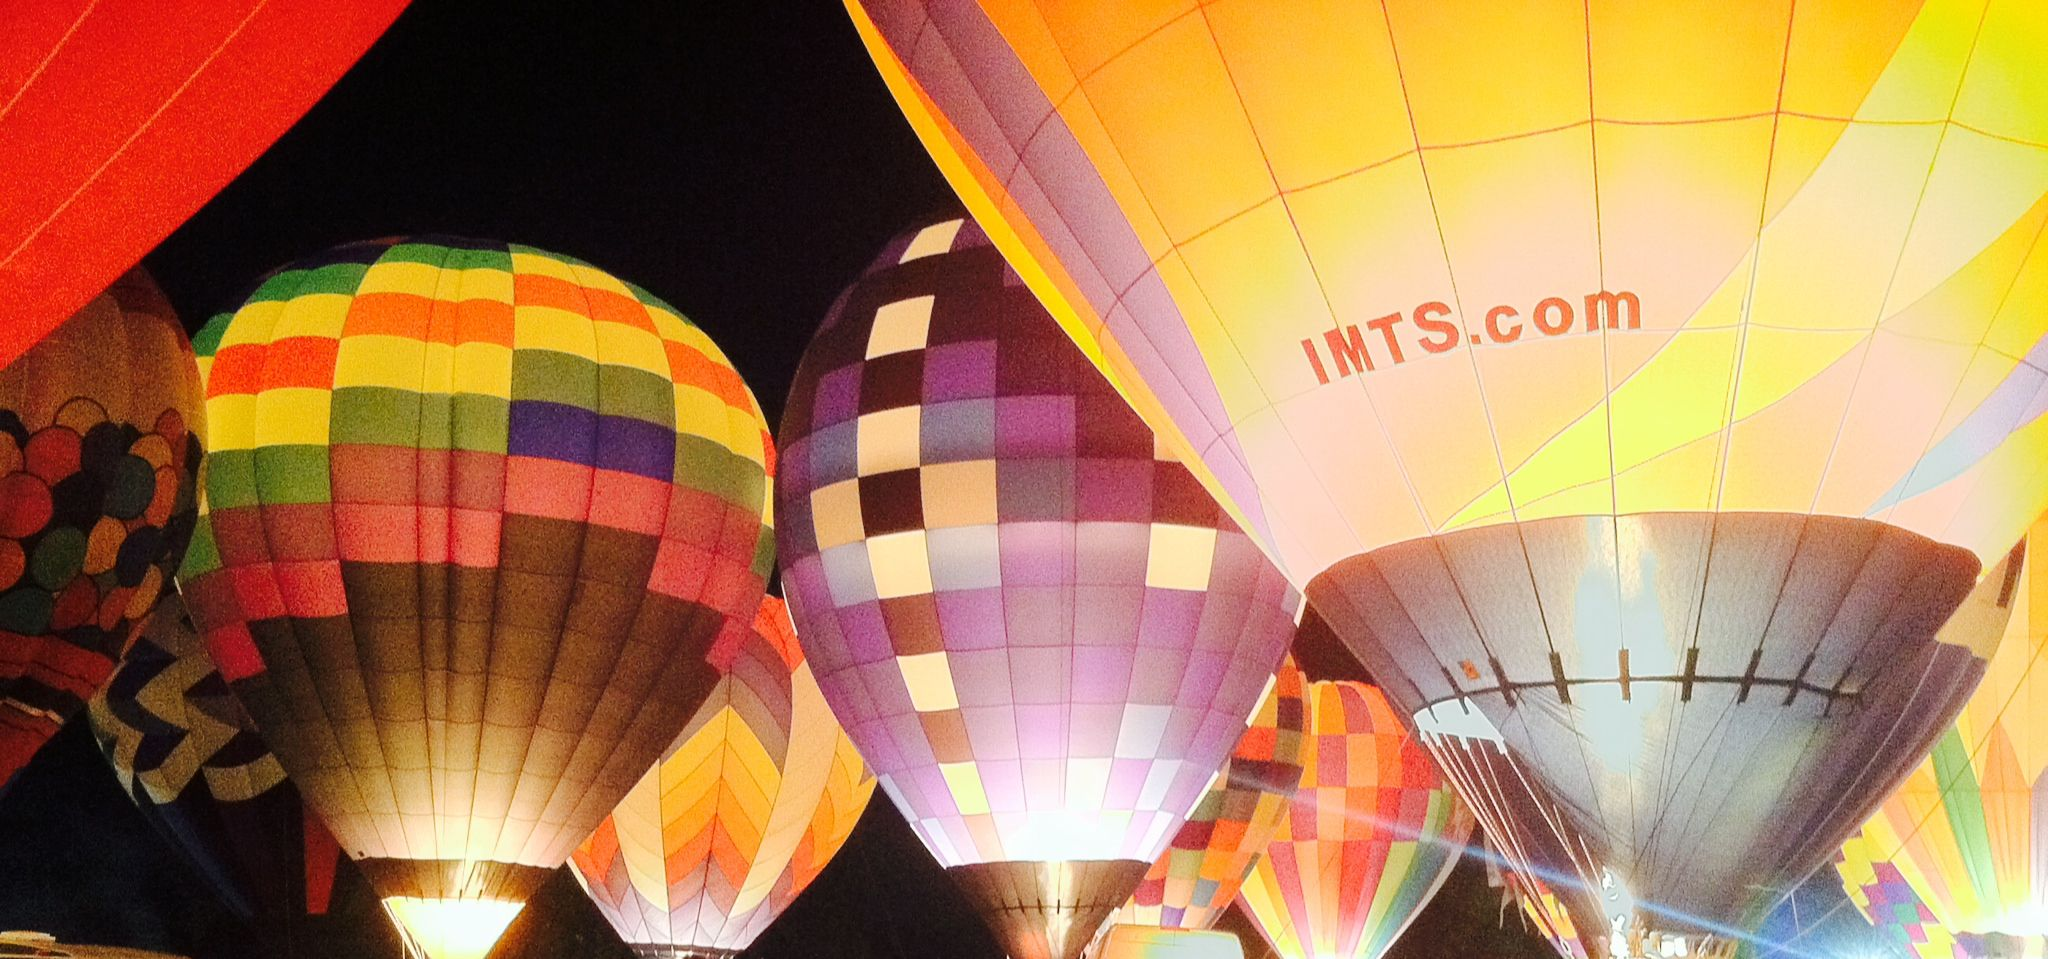 Great Forest Balloon Fest! They make me so happy!